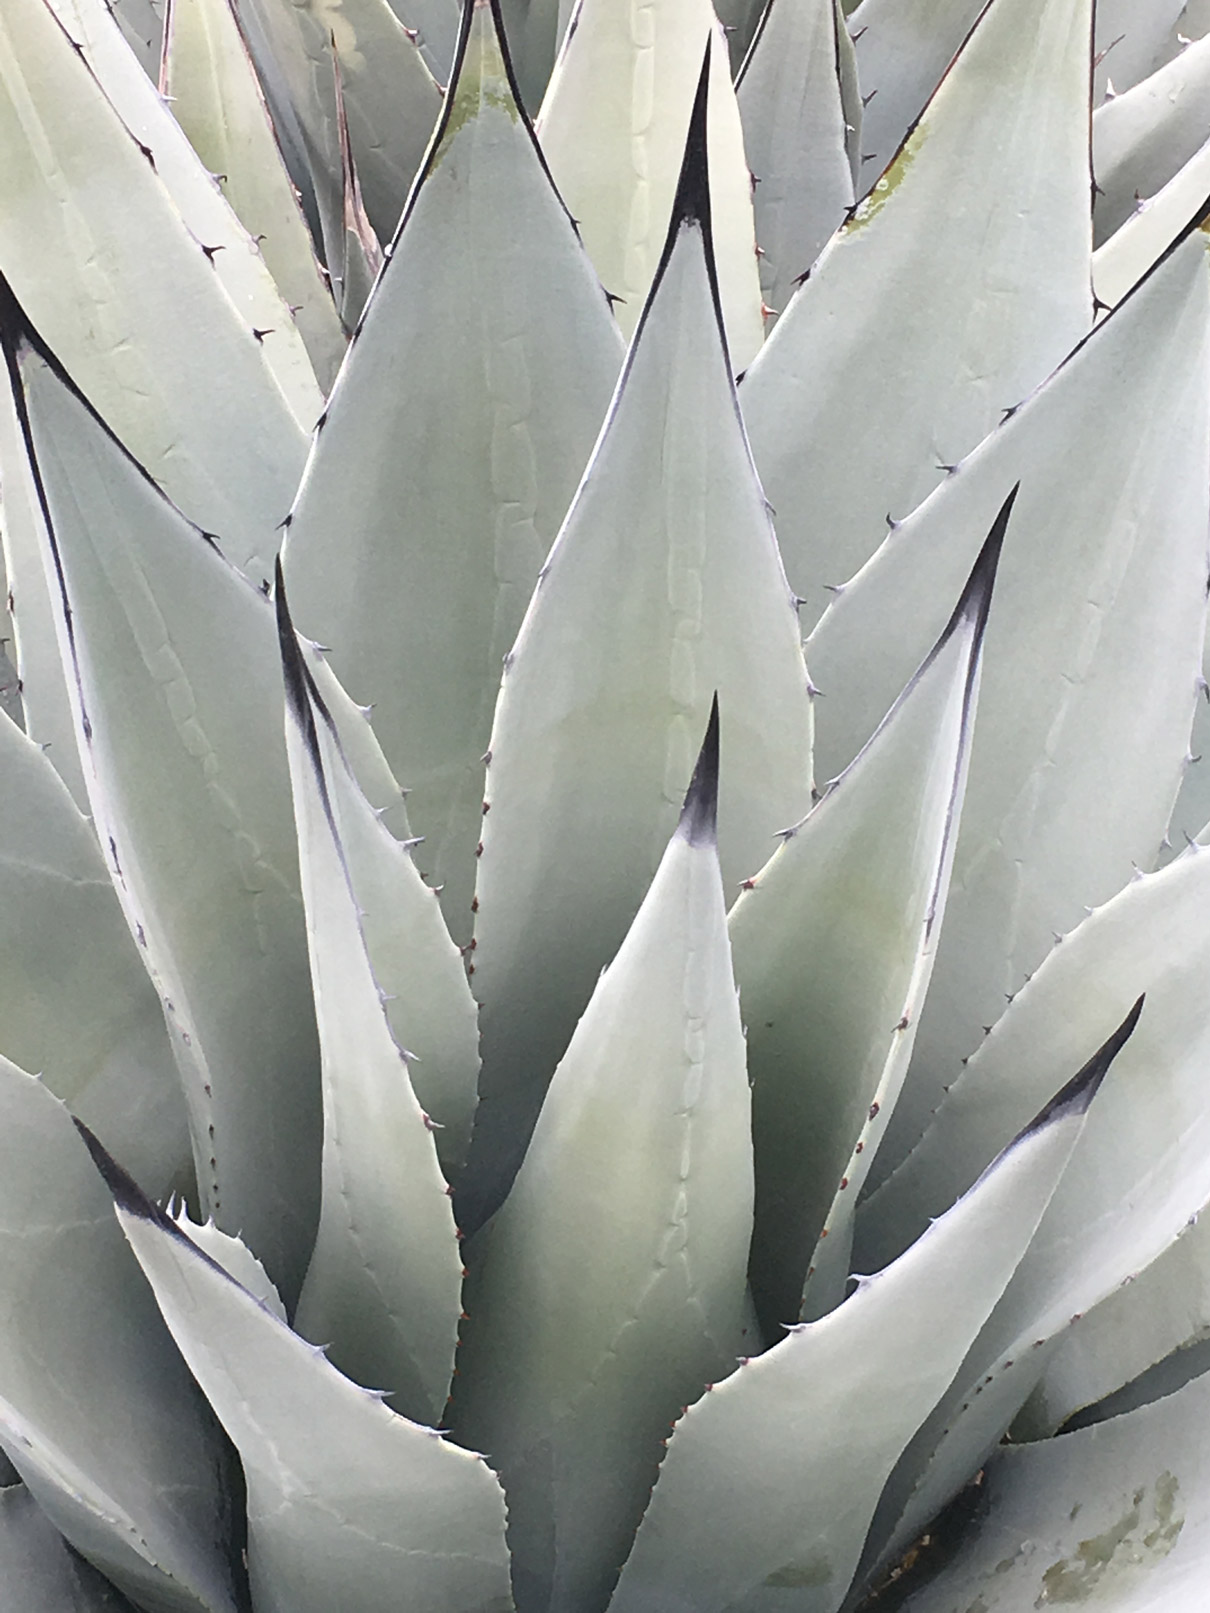 A close-up of the center leaves and spines of a Parry's Agave.